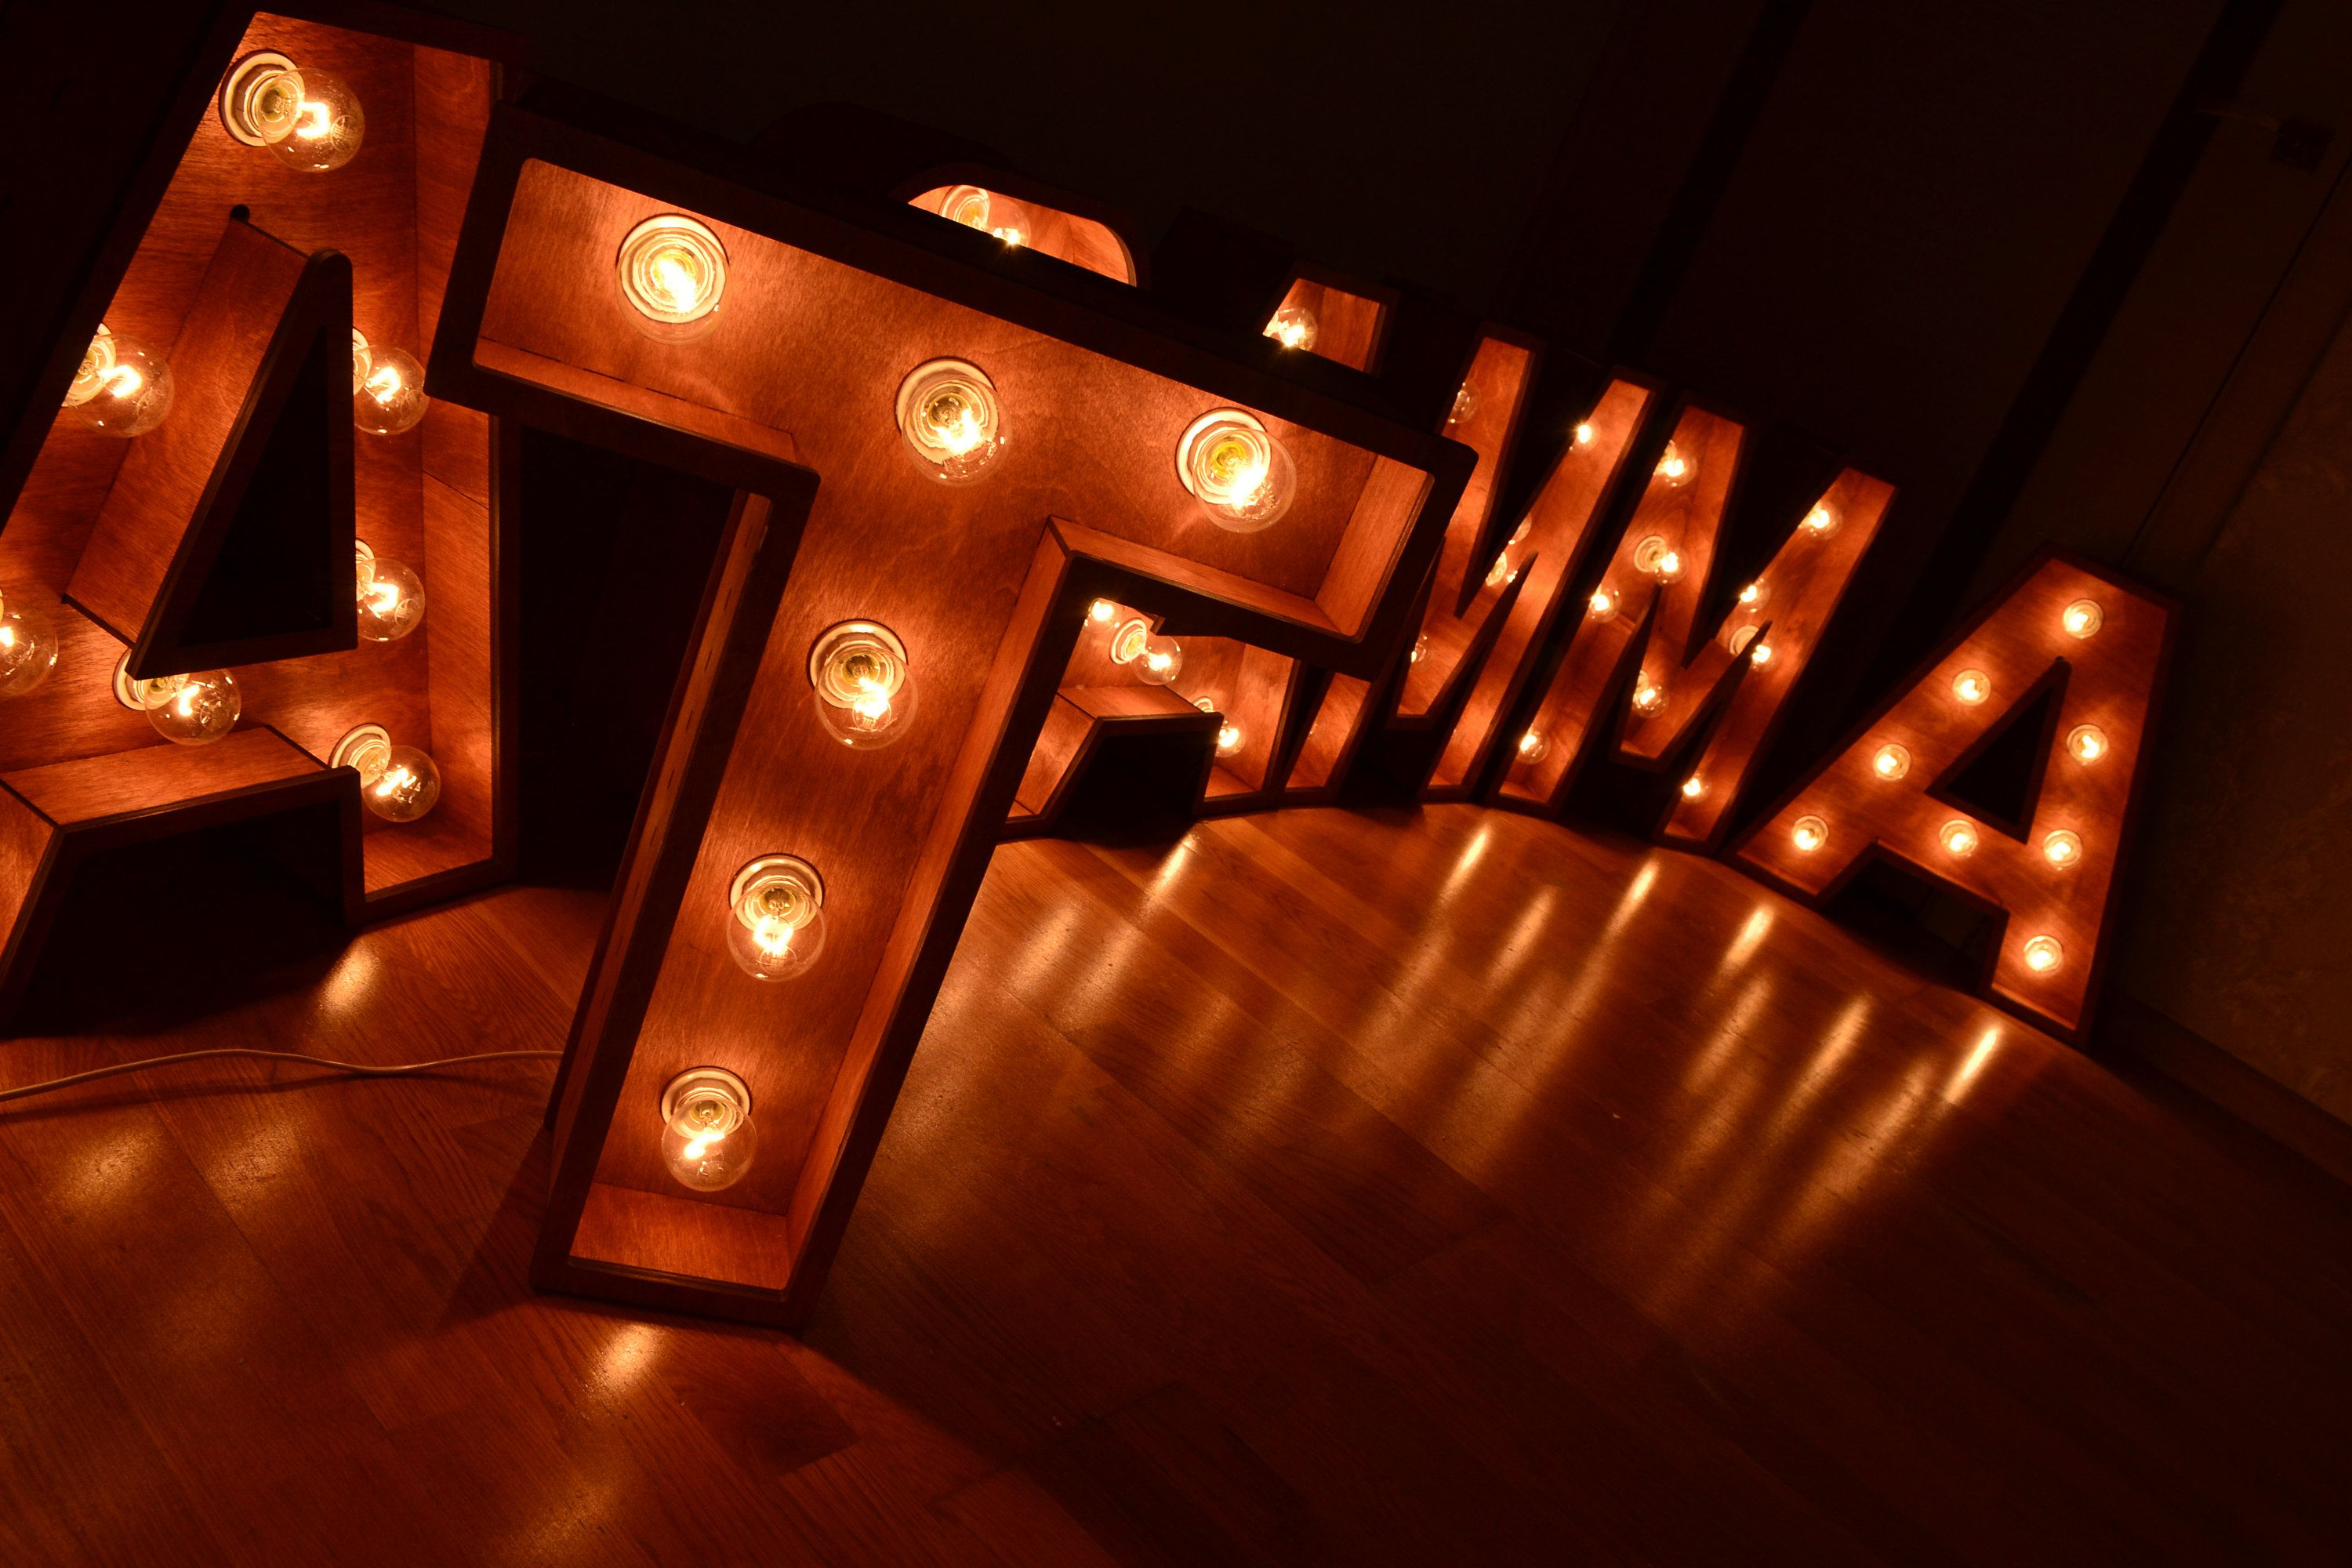 Lighted Marquee Letter Marquee Letters Light Up Letters Marquee Sign Rustic Wedding Rustic Large Light Up Letters V 2020 G